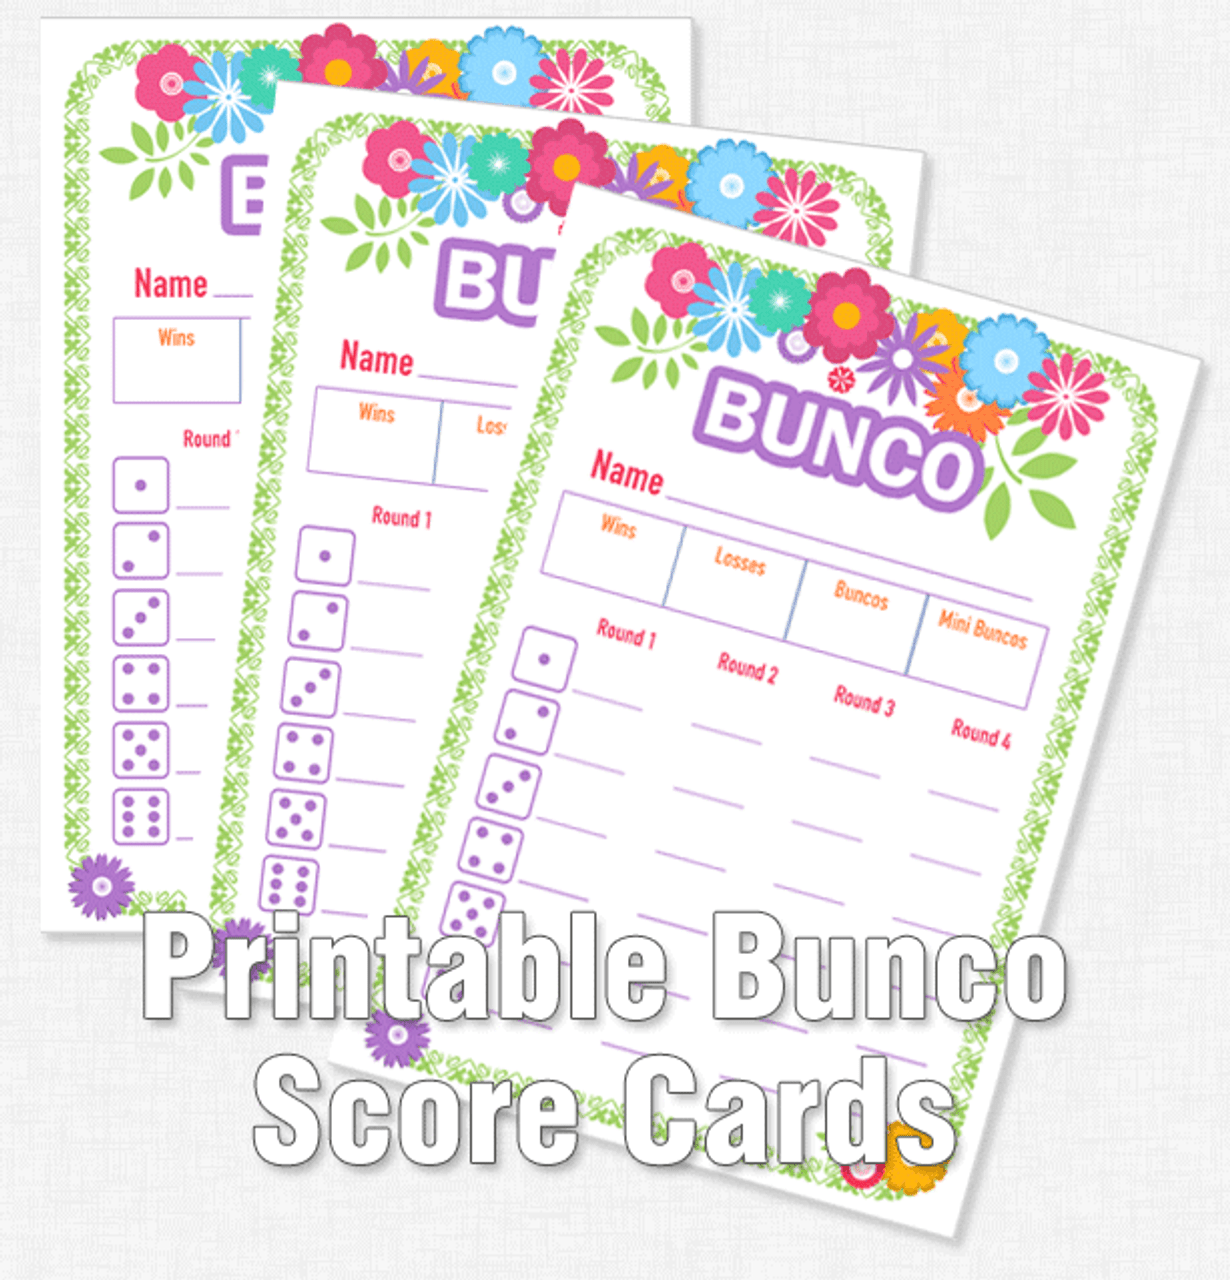 image about Printable Bunco Sheets titled Printable Flower Bunco Rating Playing cards